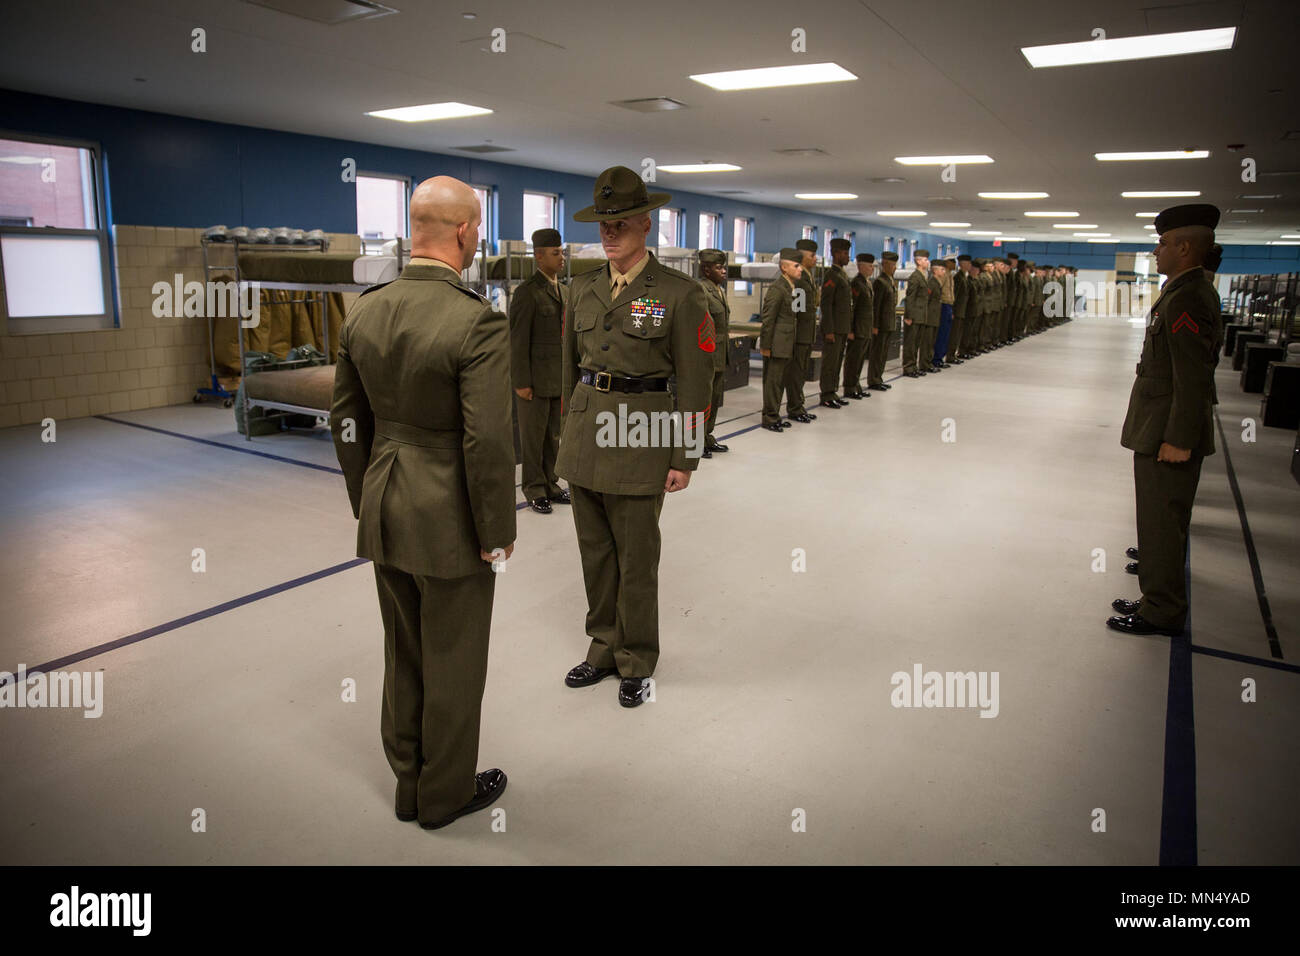 U.S. Marine Corps Sgt. Charles J. Dunphy, senior drill instructor of Platoon 3060, India Company, 3rd Recruit Training Battalion, reports that his Marines are ready for inspection Aug. 23, 2017, on Parris Island, S.C. Formal inspections held by officers and sergeants, like Dunphy, 29, from Philadelphia, ensure Marines have properly fitted uniforms as well as possess attention to detail, bearing, confidence and discipline. India Company is scheduled to graduate Aug. 25, 2017. Parris Island has been the site of Marine Corps recruit training since Nov. 1, 1915. Today, approximately 20,000 recruit - Stock Image